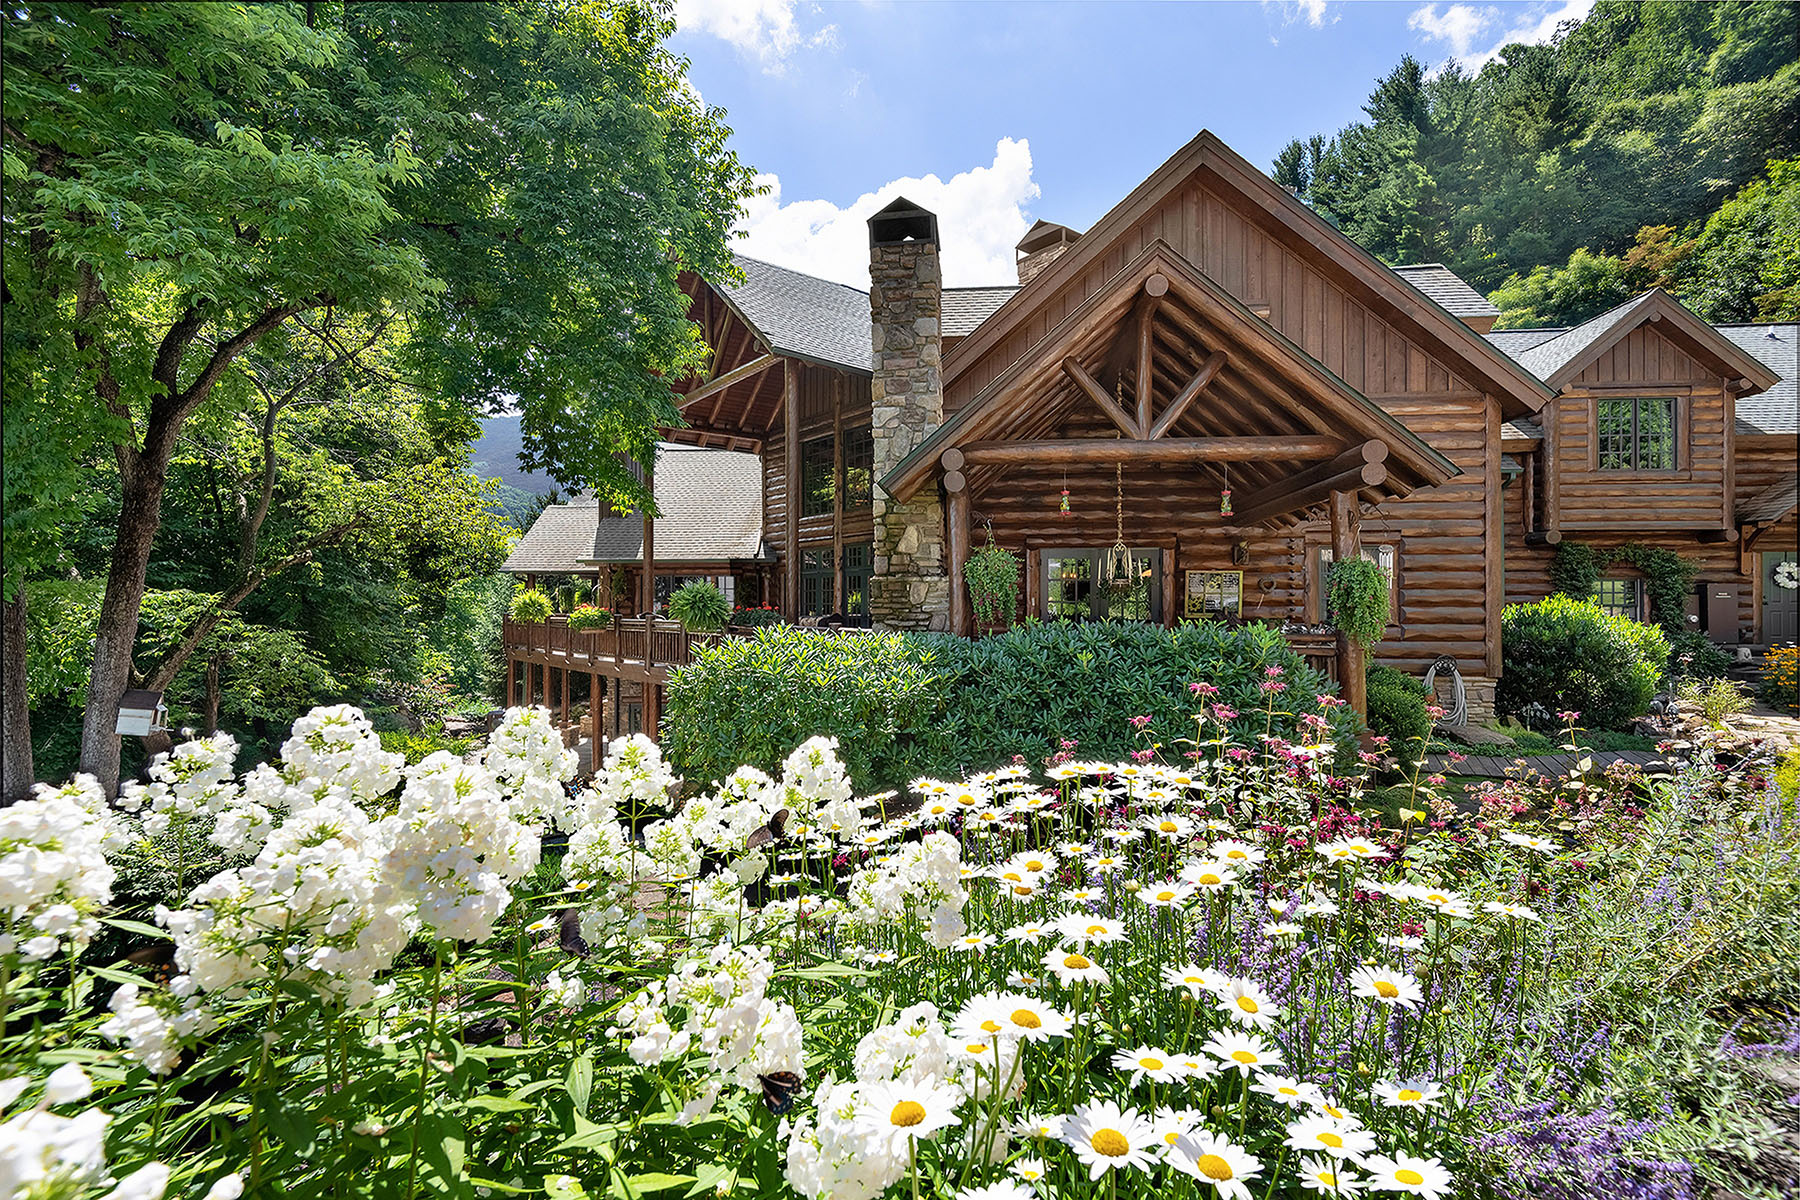 Single Family Homes for Sale at WAYNESVILLE - 212 SWEETHART PLACE 212 Sweethart Pl Waynesville, North Carolina 28786 United States